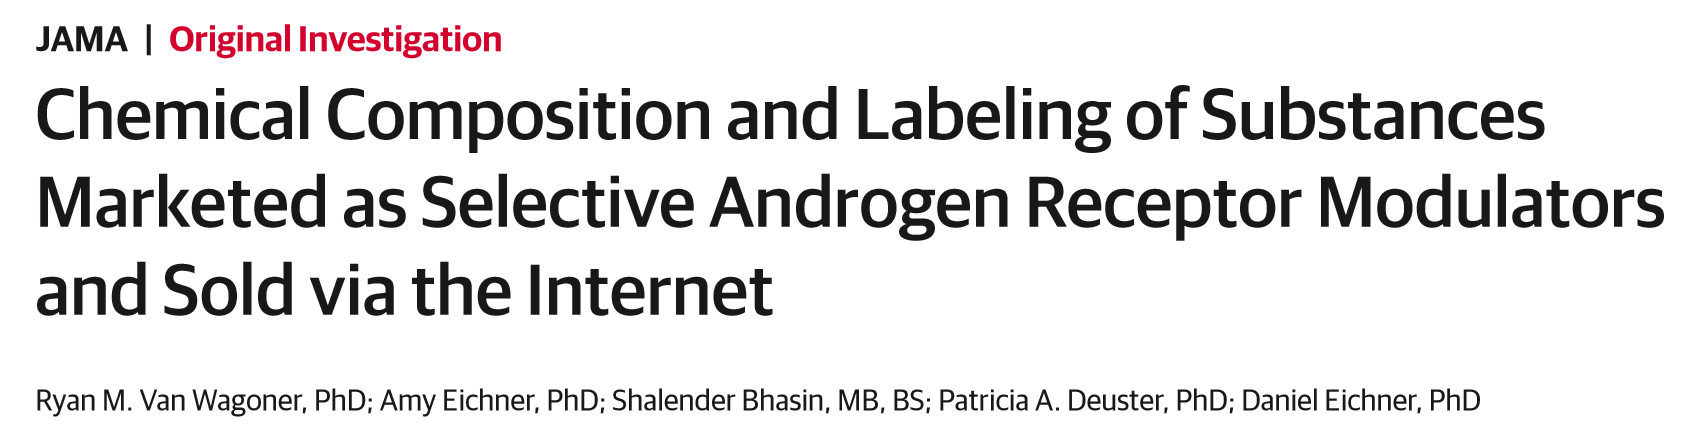 Chemical Composition and Labeling of Substances Marketed as Selective Androgen Receptor Modulators and Sold via the Internet